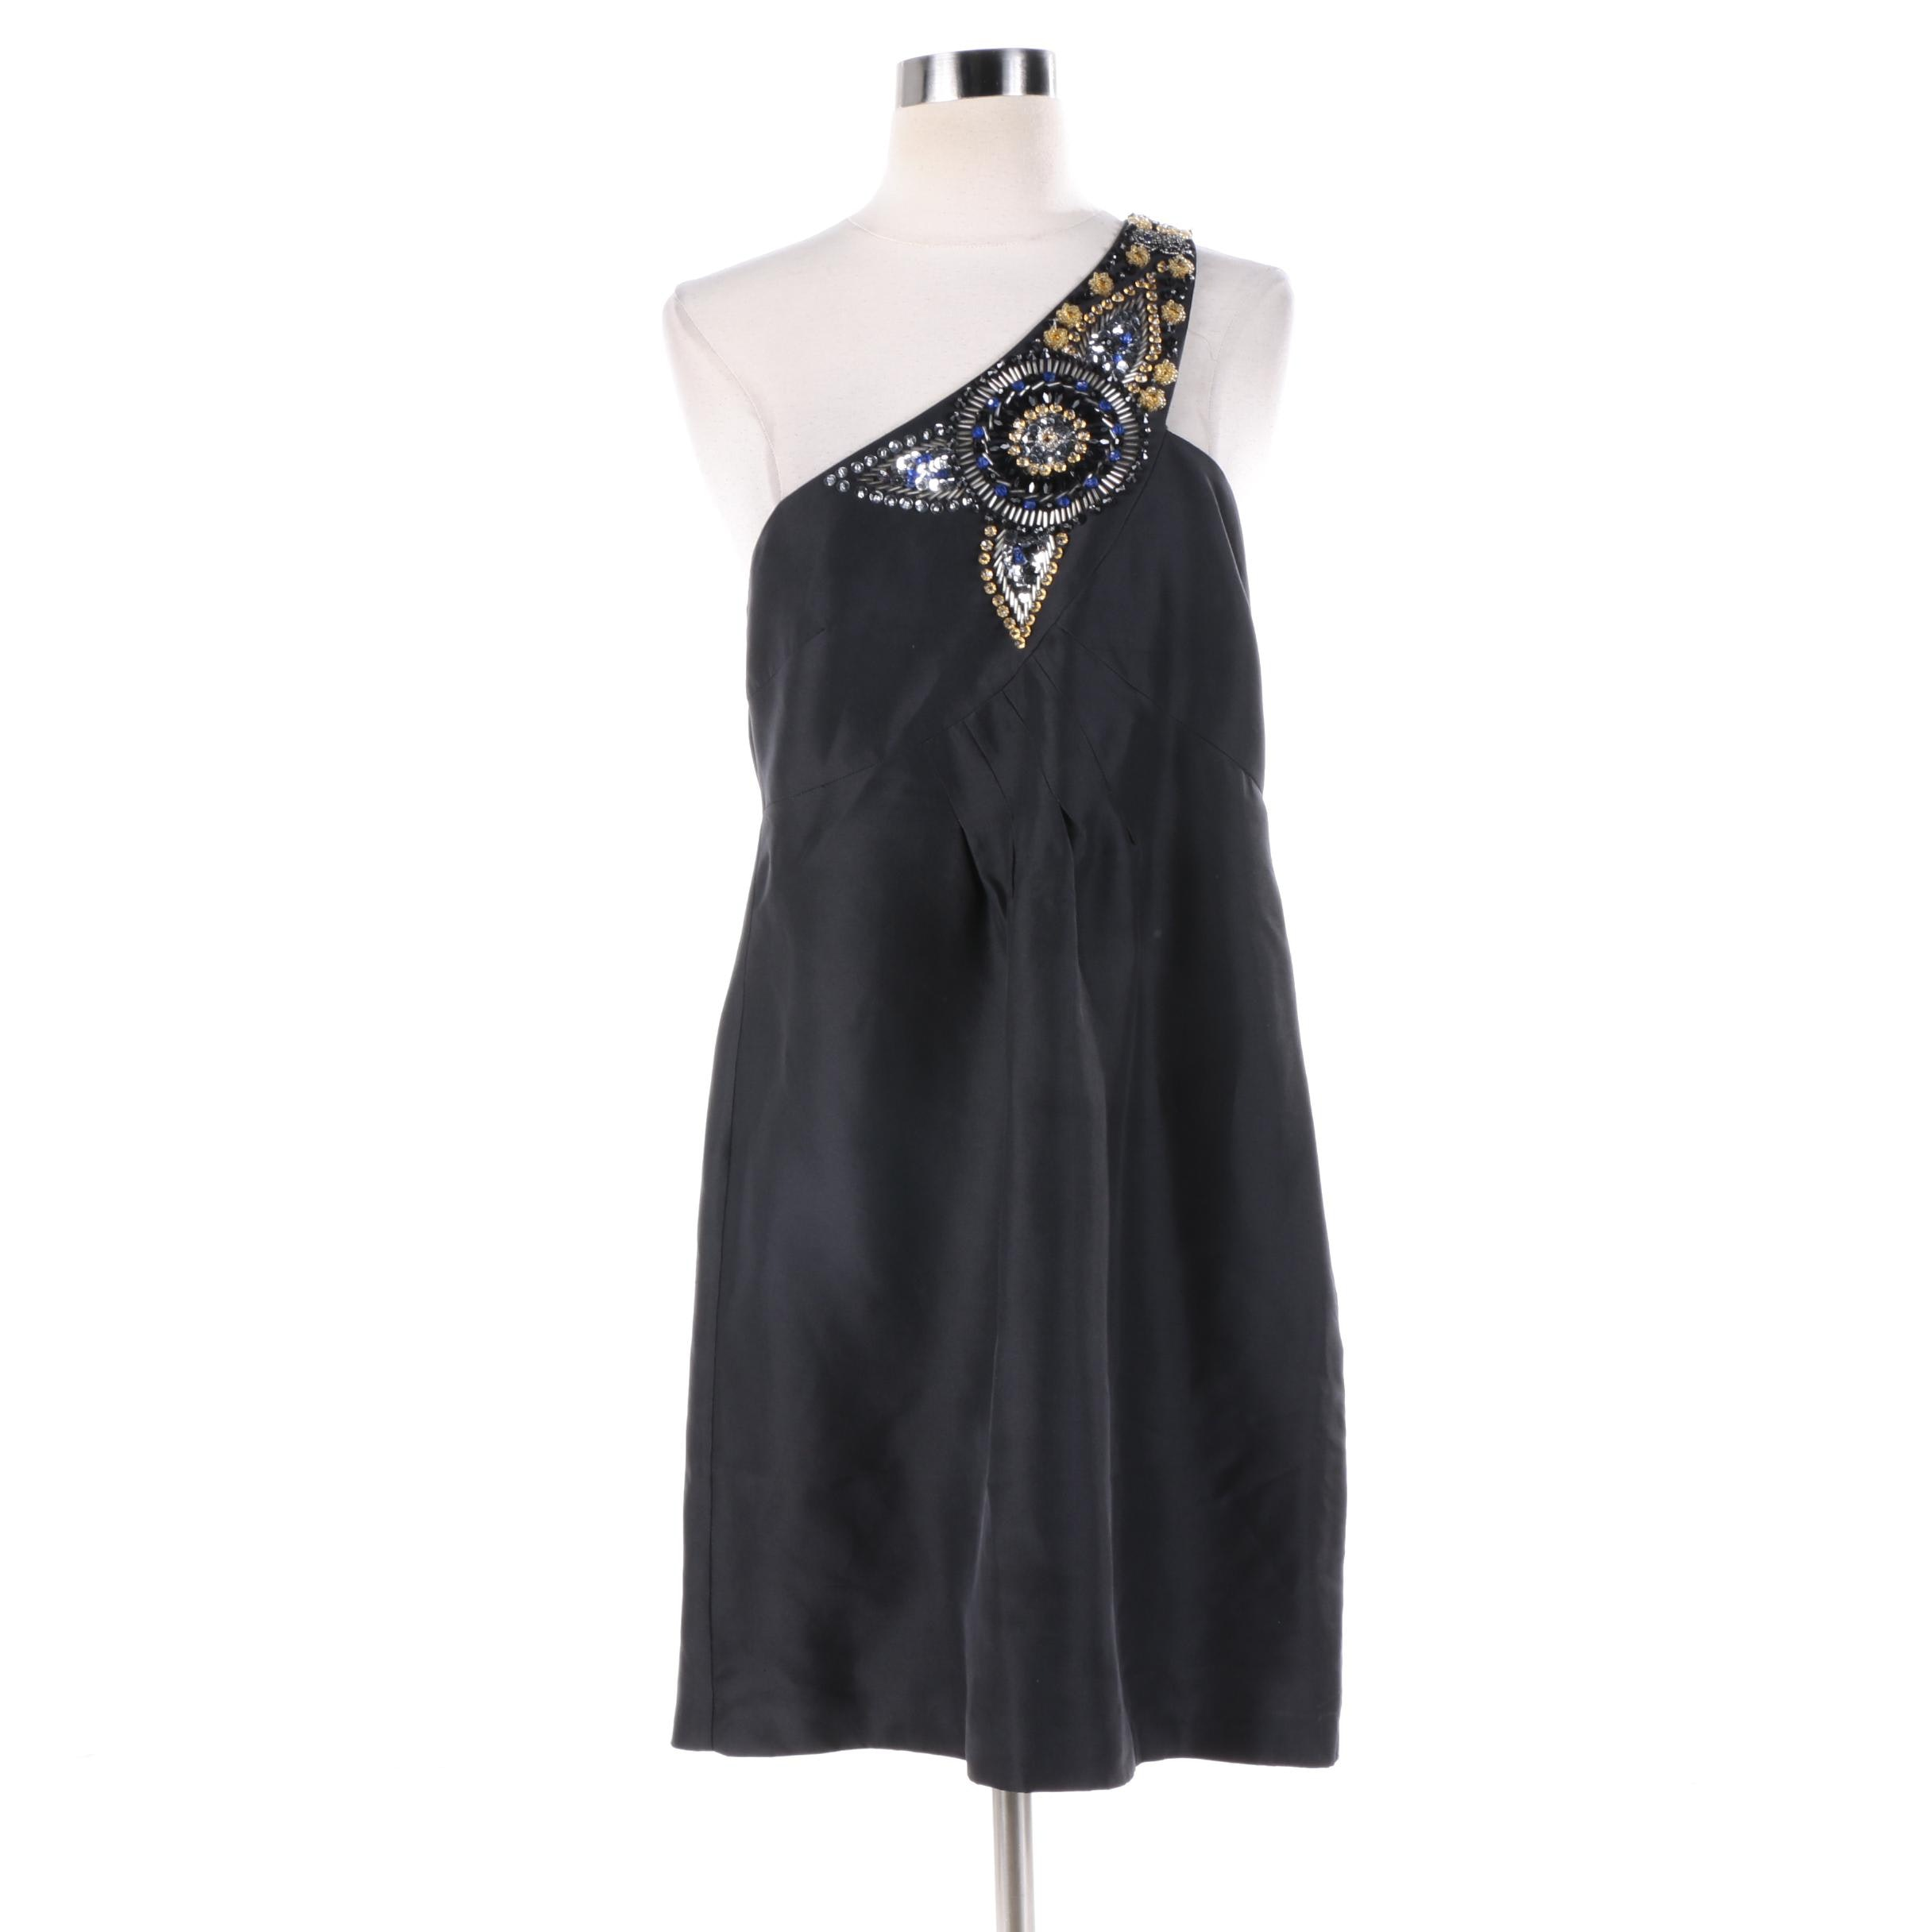 Tibi of New York Embellished Black Silk One-Shoulder Cocktail Dress